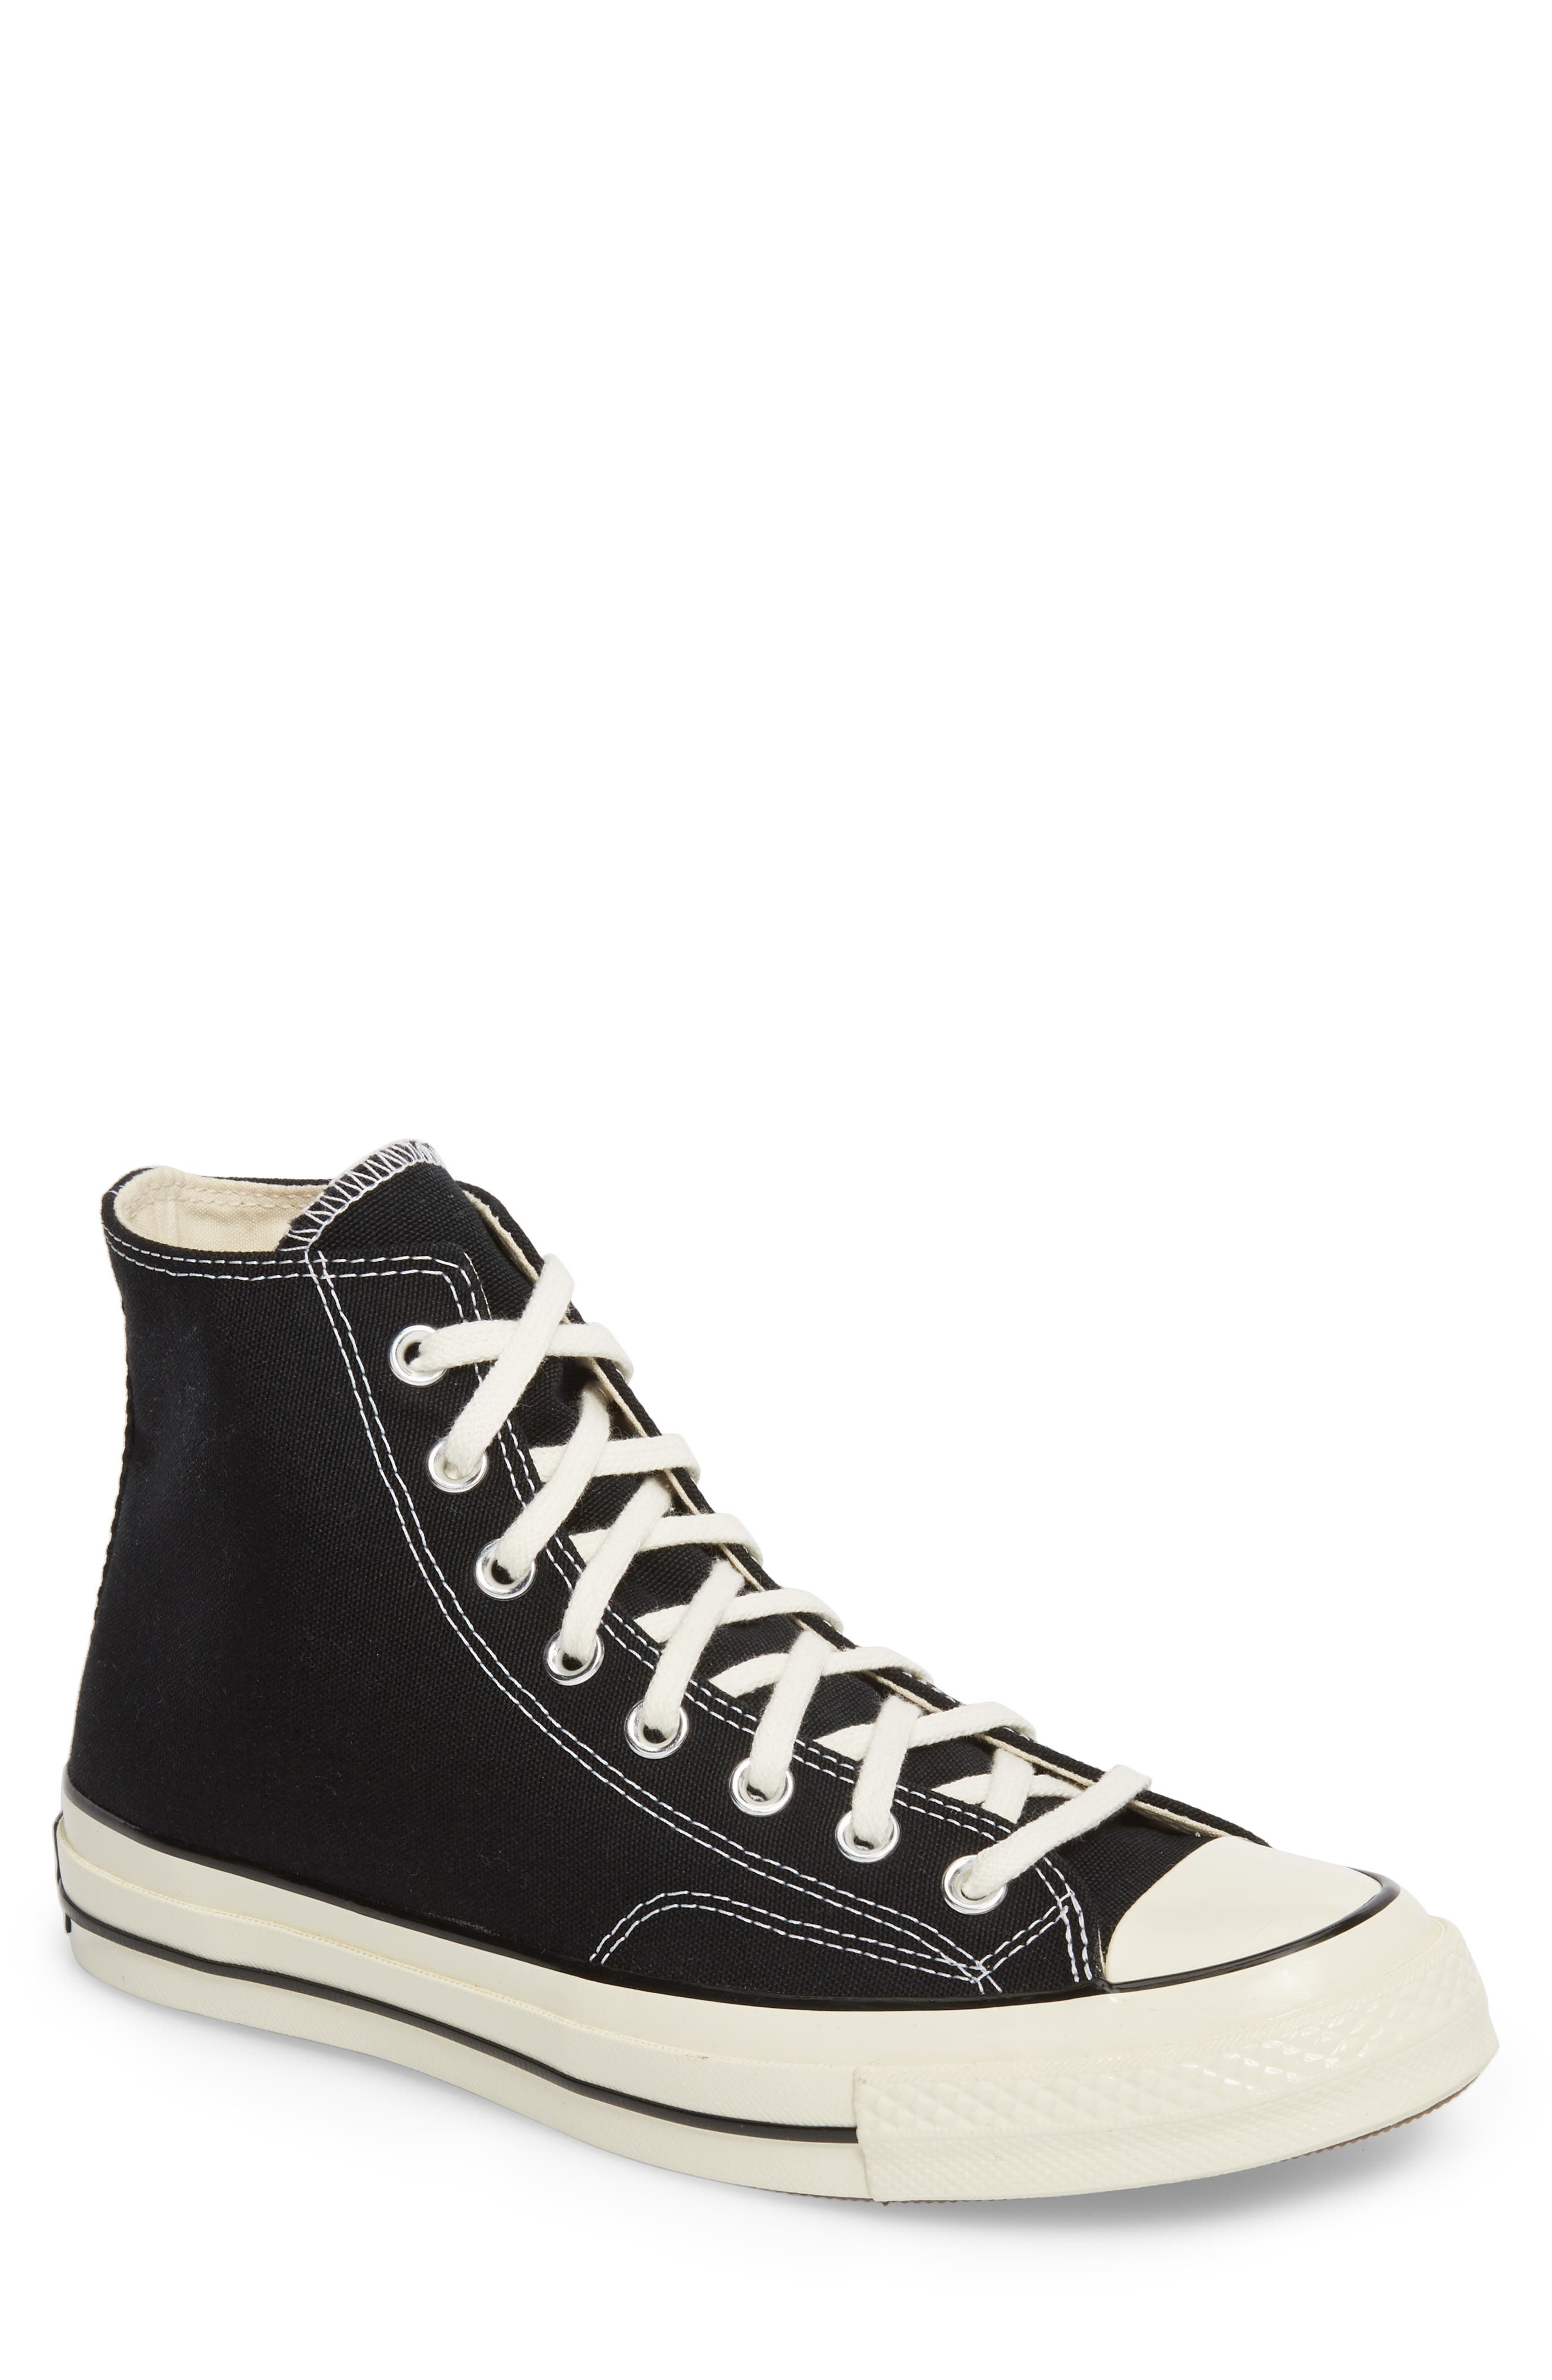 vintage converse chuck taylor all stars